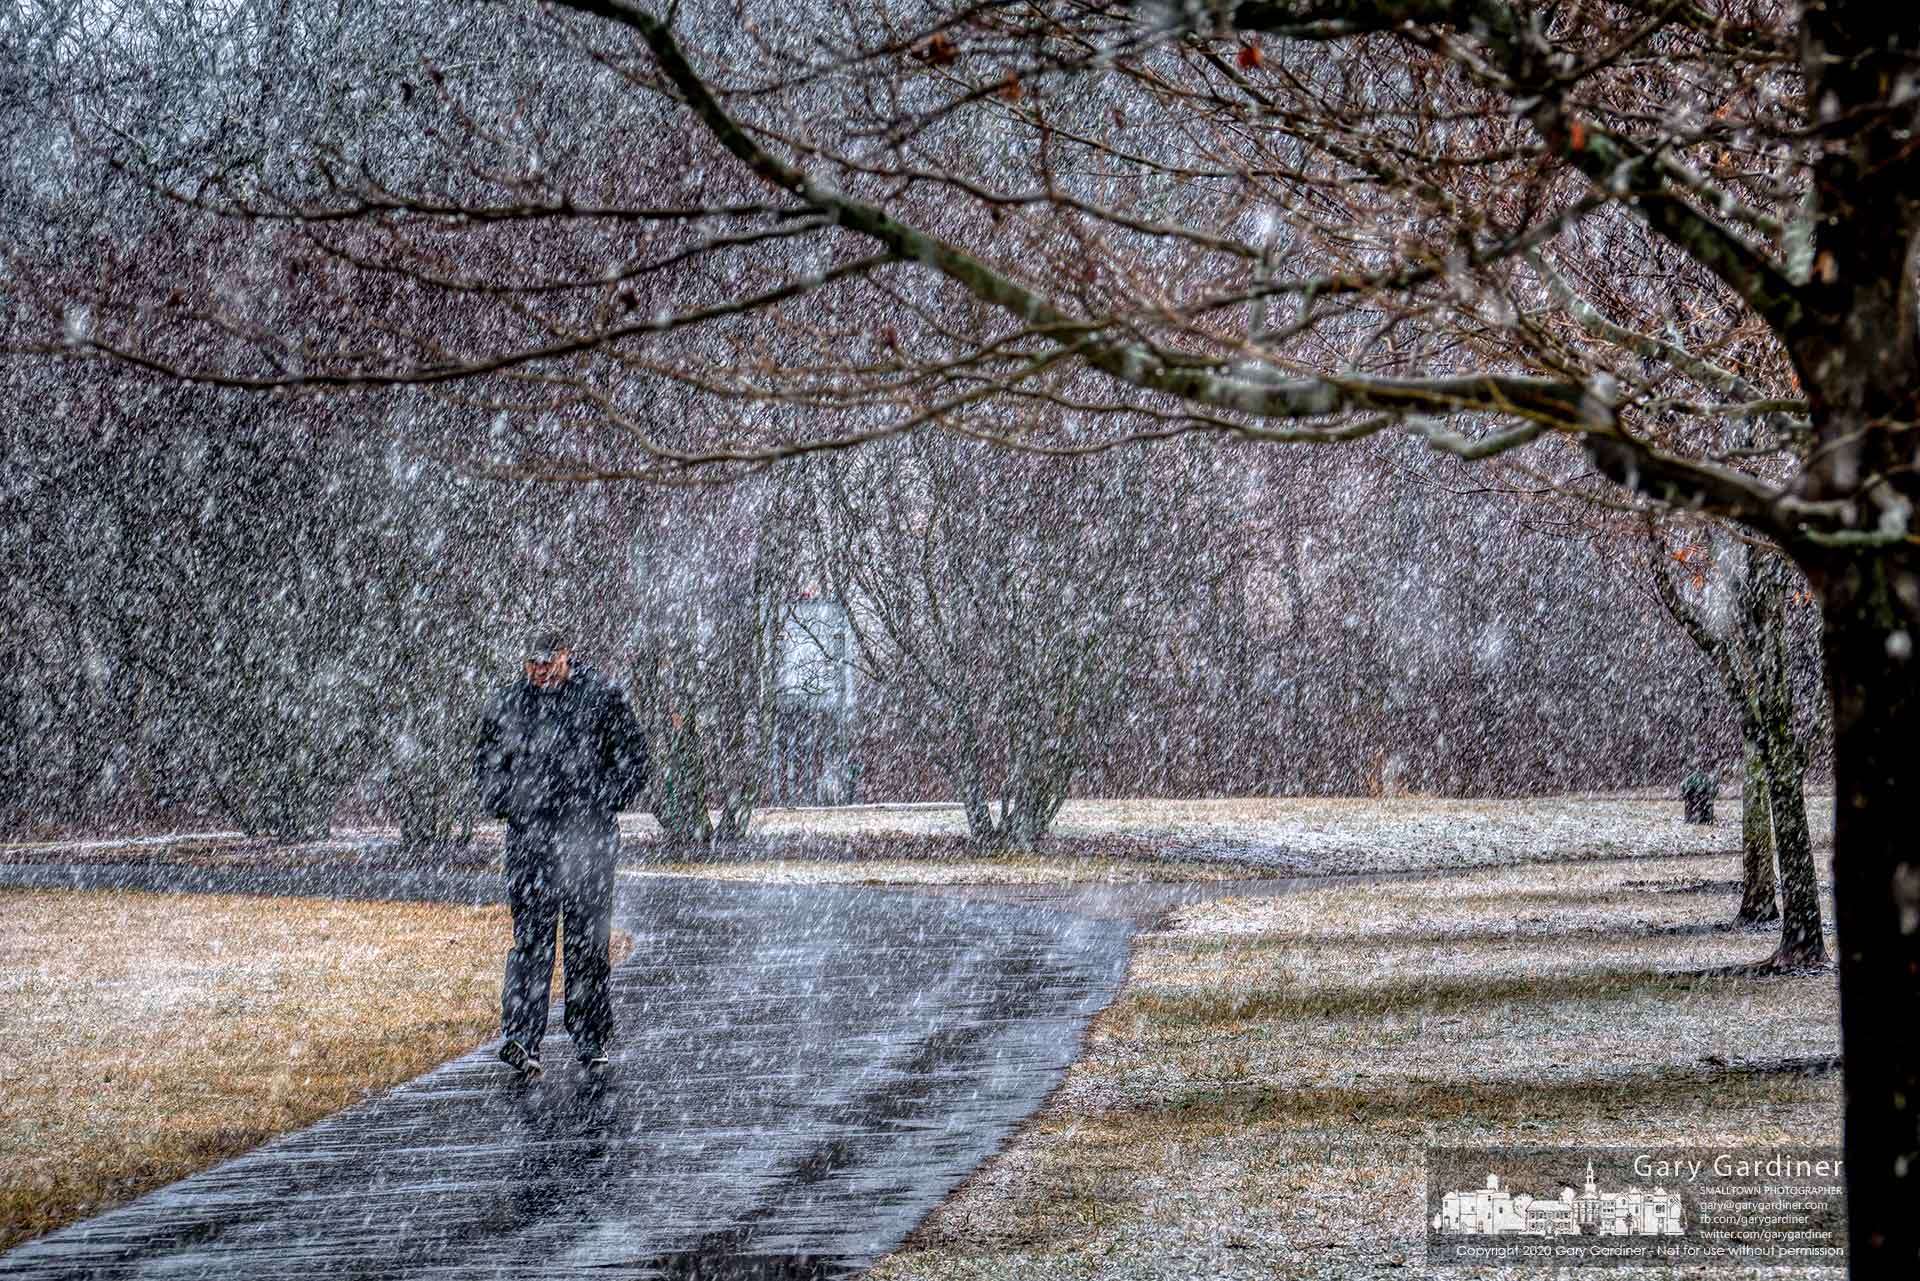 A man gets in his daily walk through heavy snow squalls across the fields at the Westerville Sports Complex on Cleveland Ave. My Final Photo for Feb. 26, 2020.